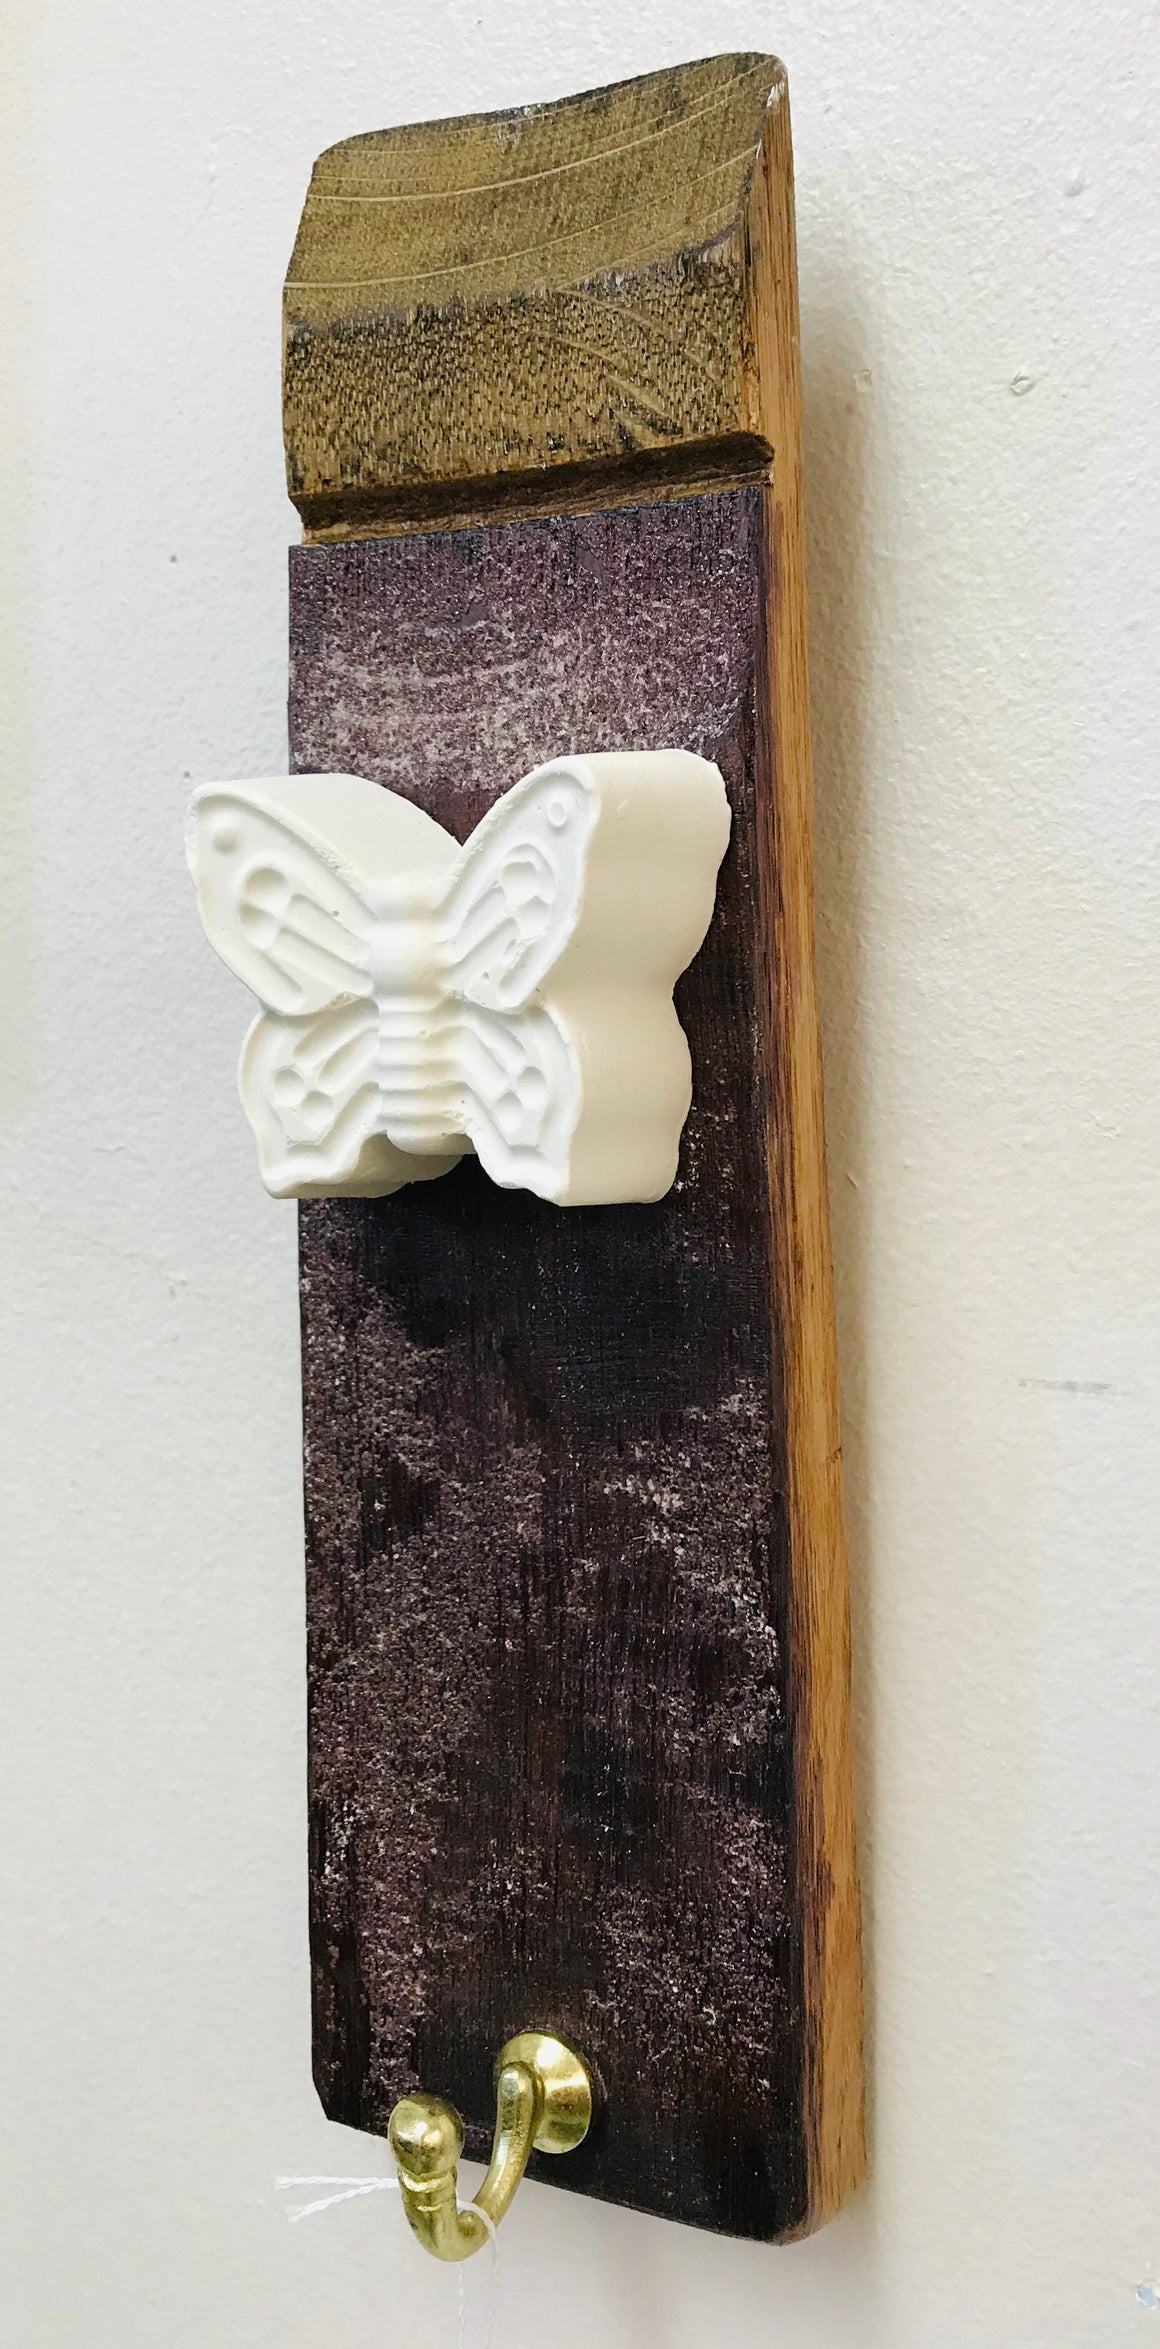 Stave hook with plaster cast insect motif. Butterfly.